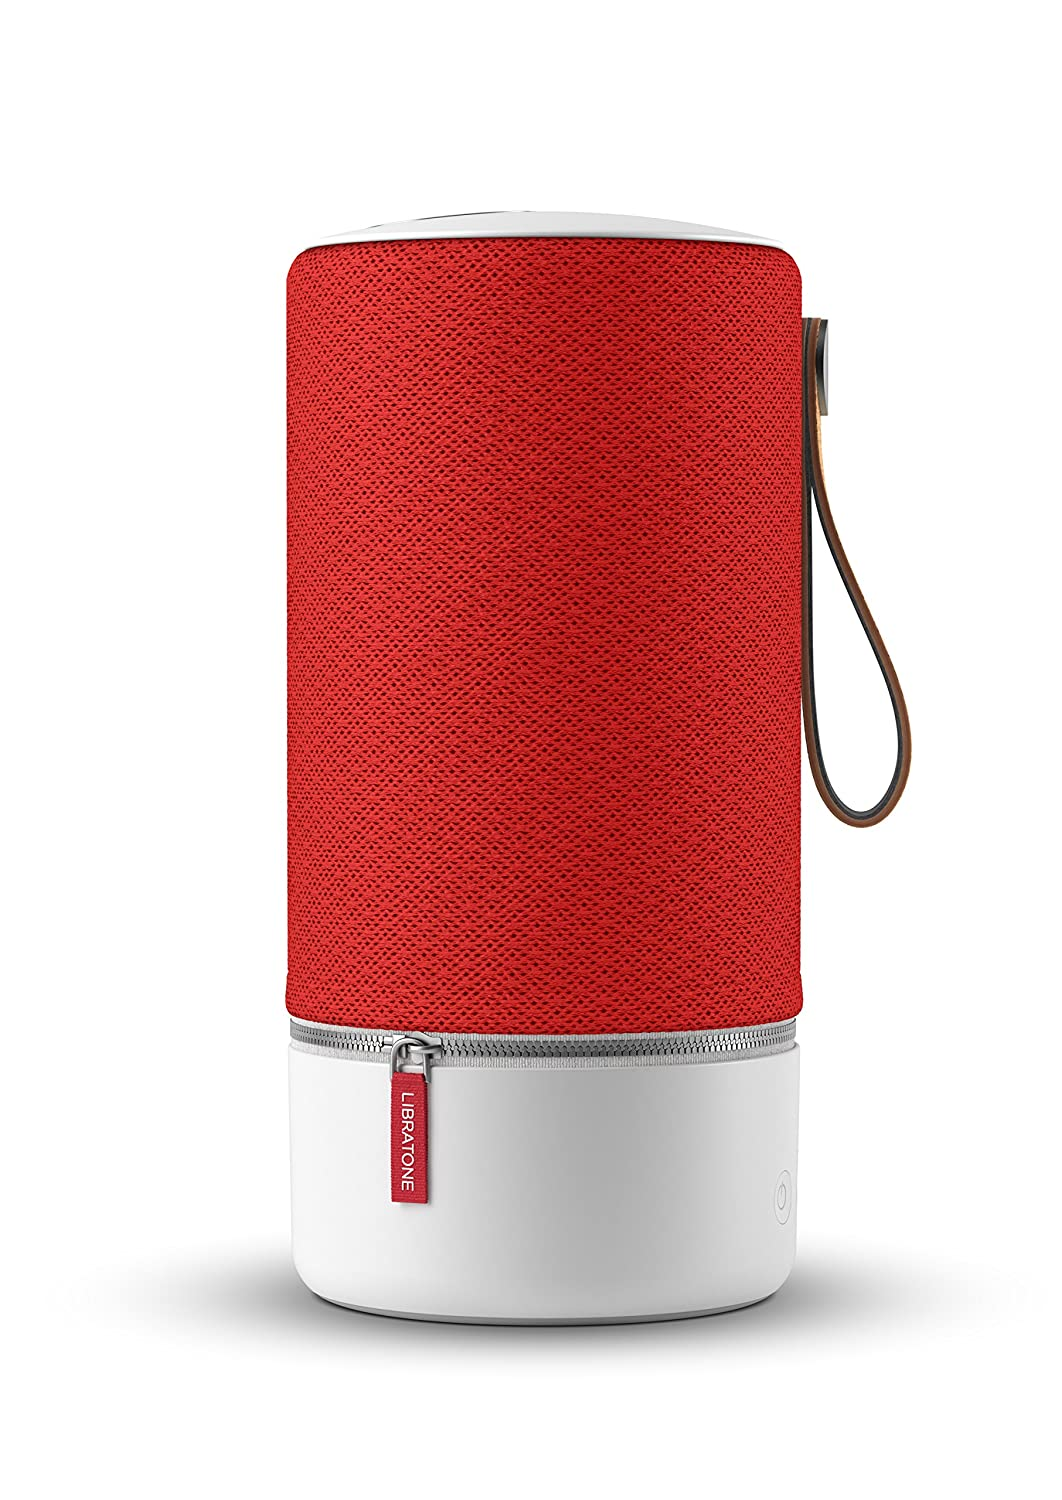 Libratone Zipp - Altavoz inalámbrico con Bluetooth (Multiroom, SoundSpaces, AirPlay, Bluetooth, DLNA, WiFi), Rojo